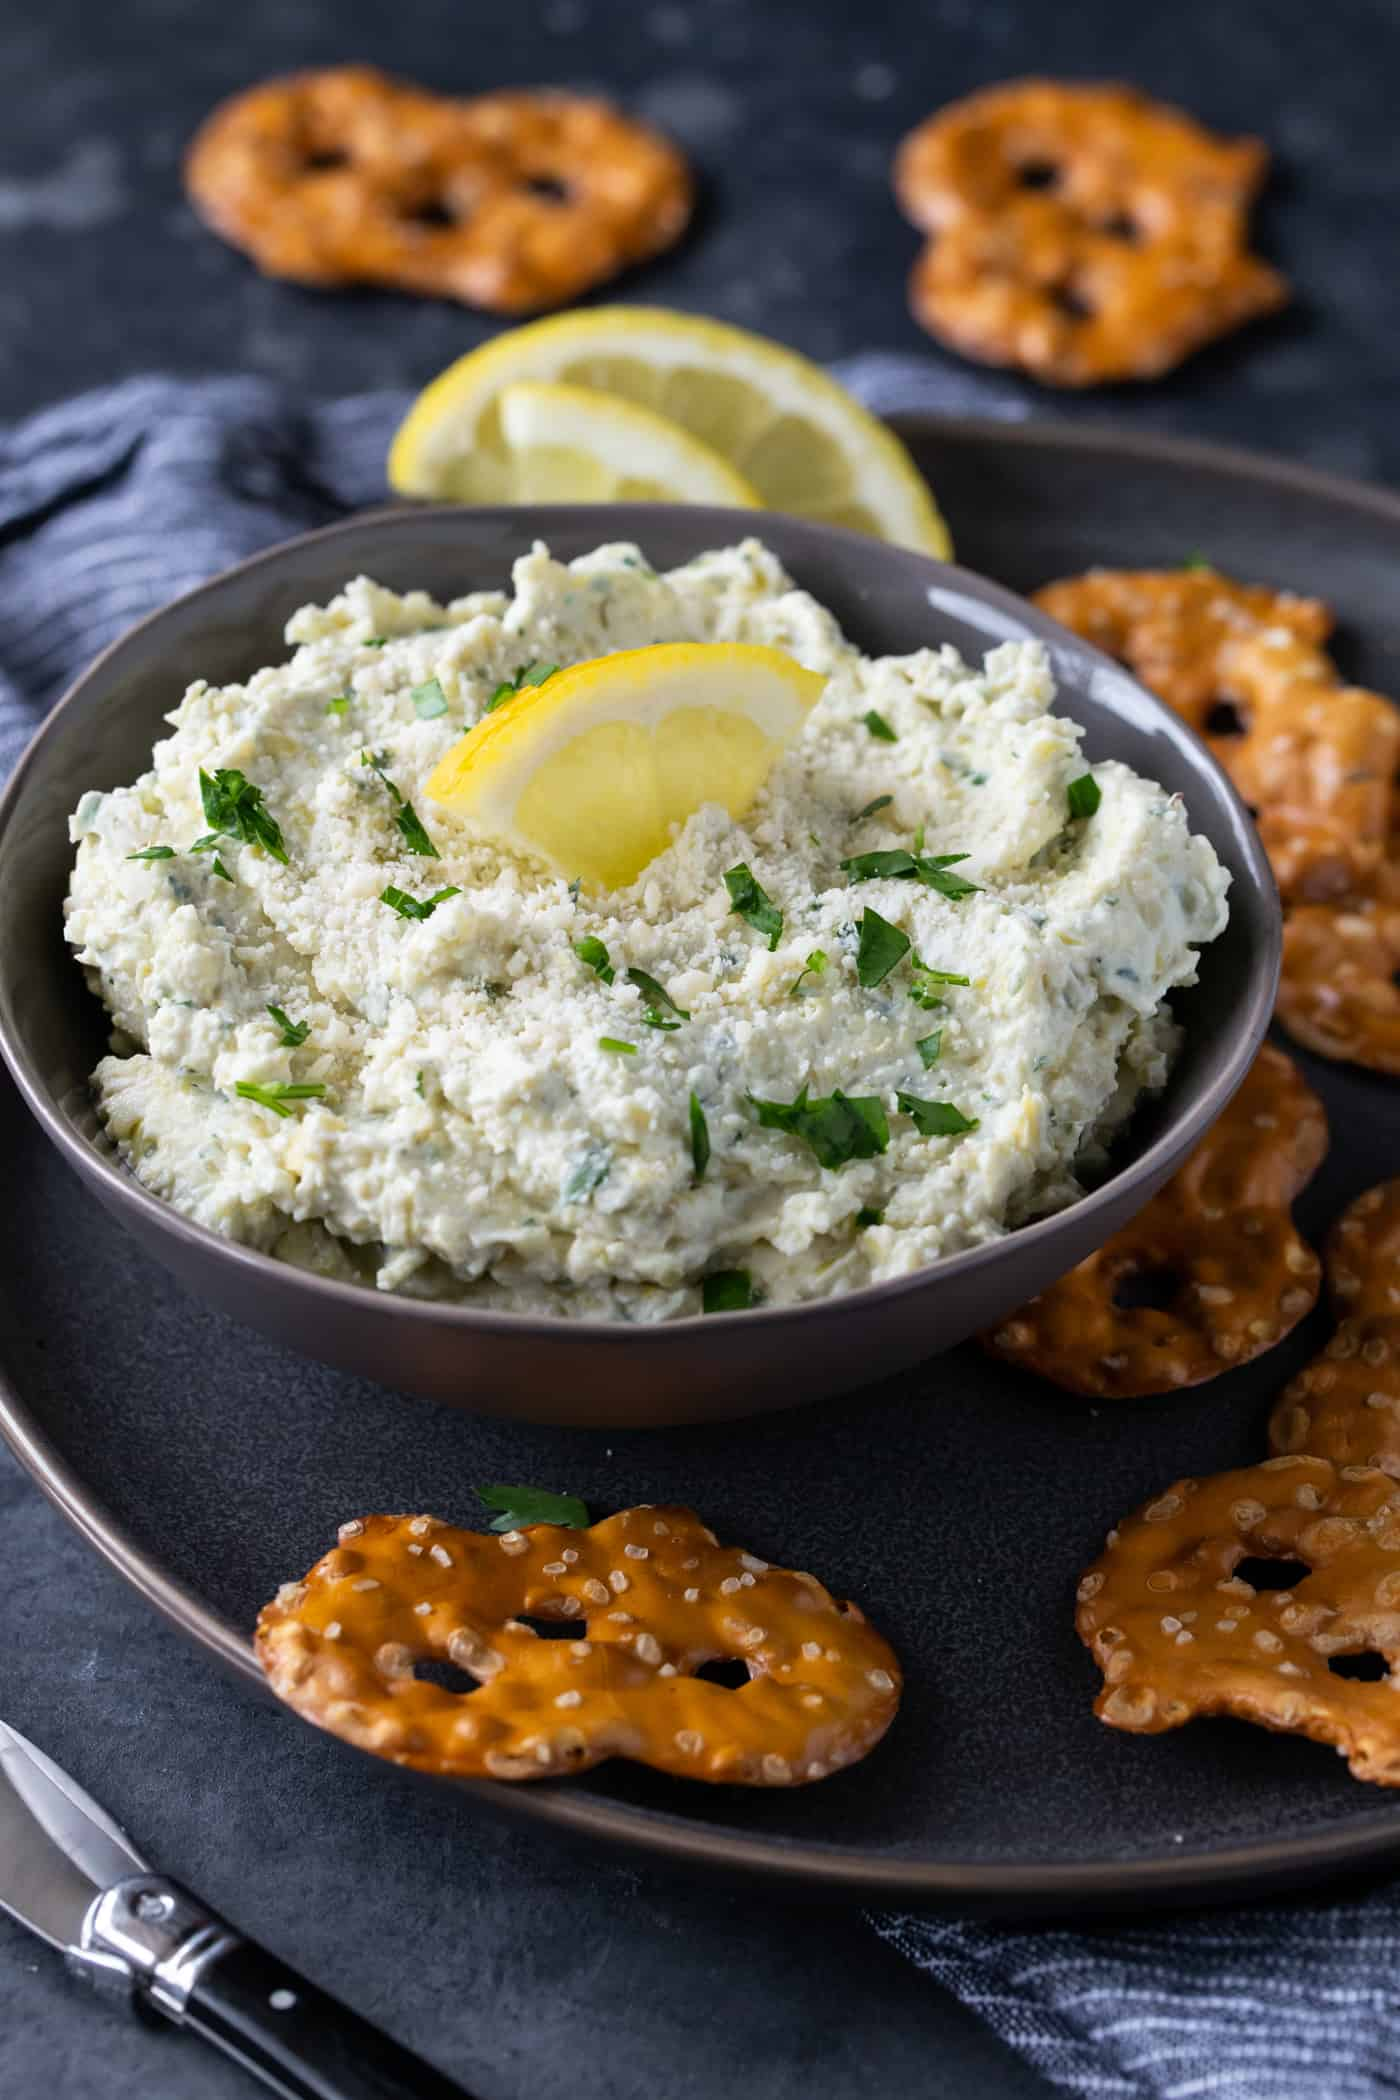 Lemon Artichoke Dip in a gray bowl garnished with fresh parsley and a lemon wedge.